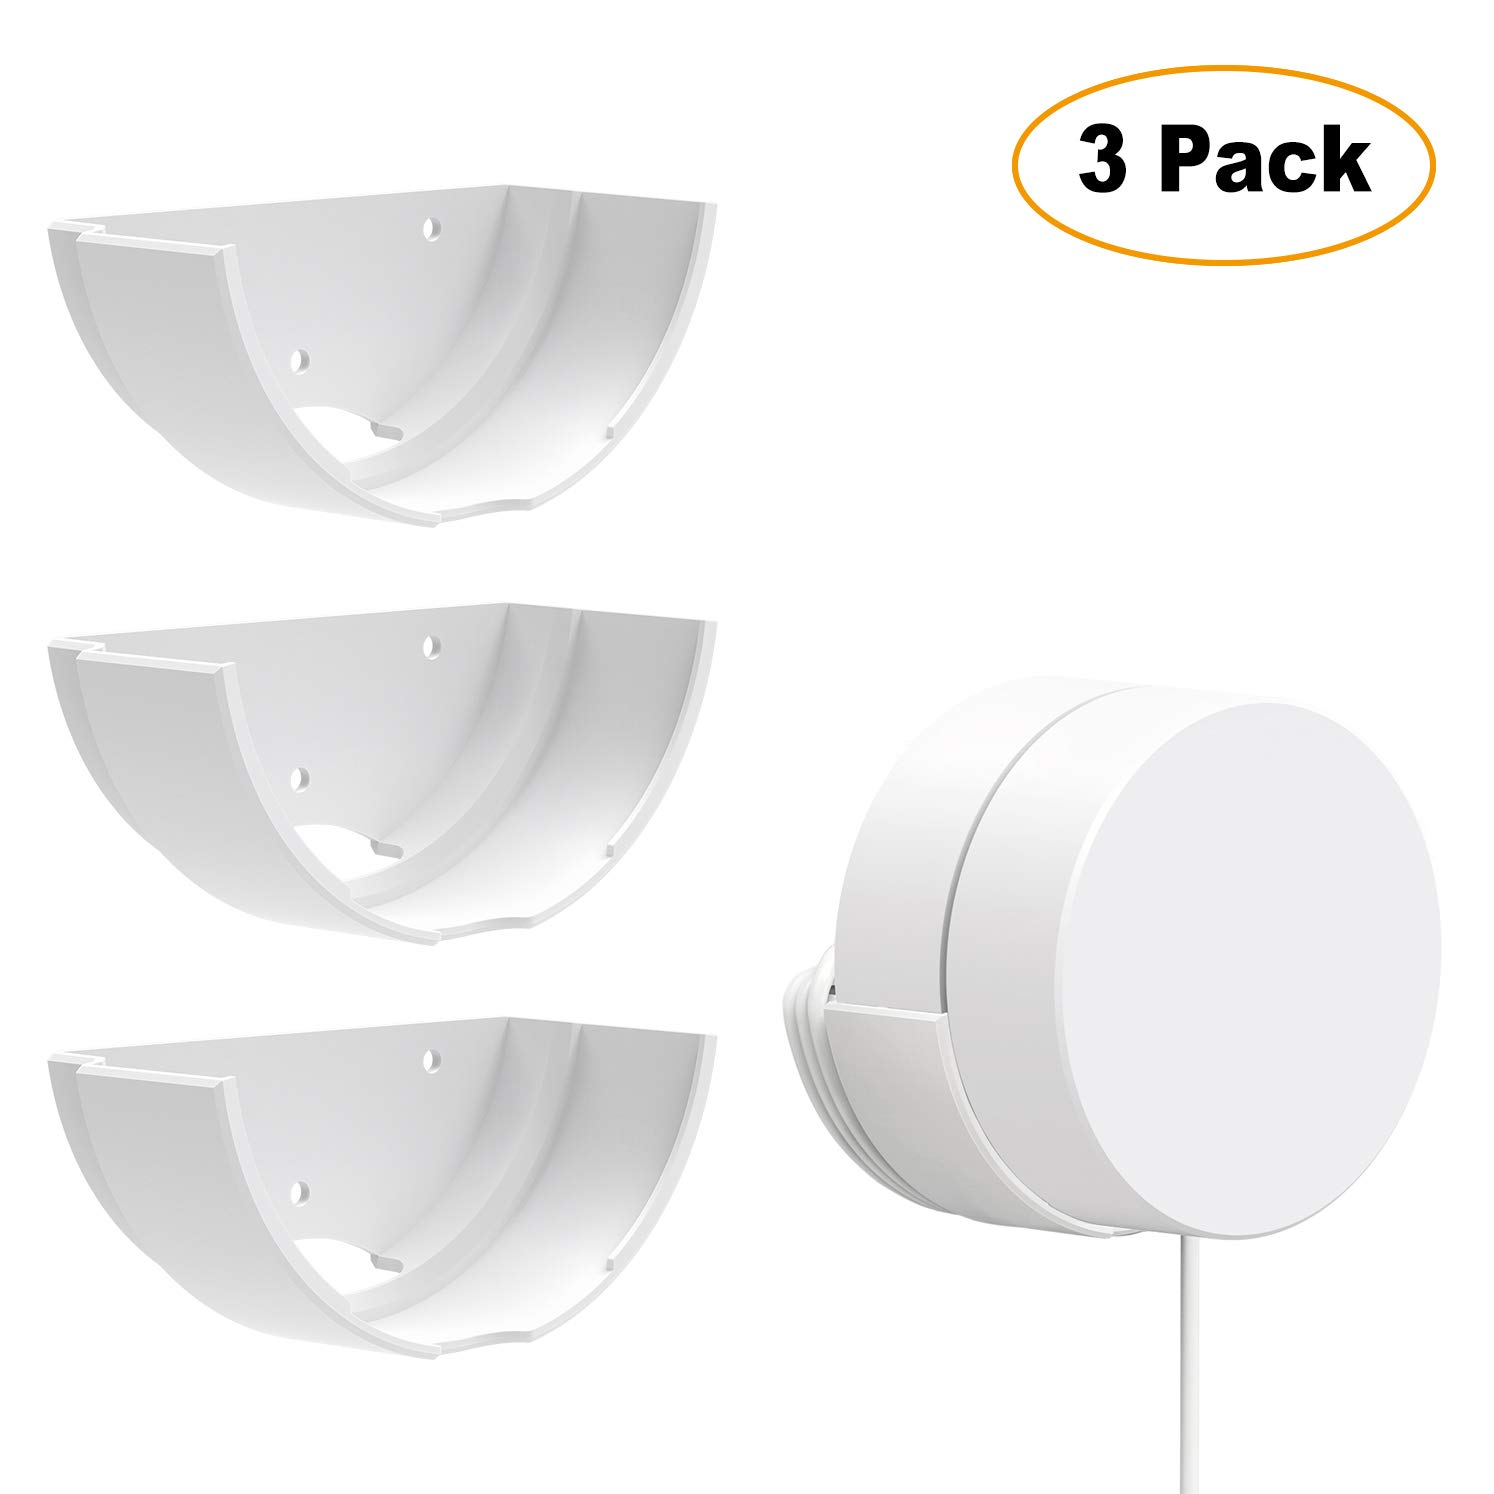 Google WiFi 3 Pack Wall Mounts, Google Router Mounting Bracket, Best Design for Winding Power Cord, Fits Snugly to Google WiFi 3 Pack by Mrount